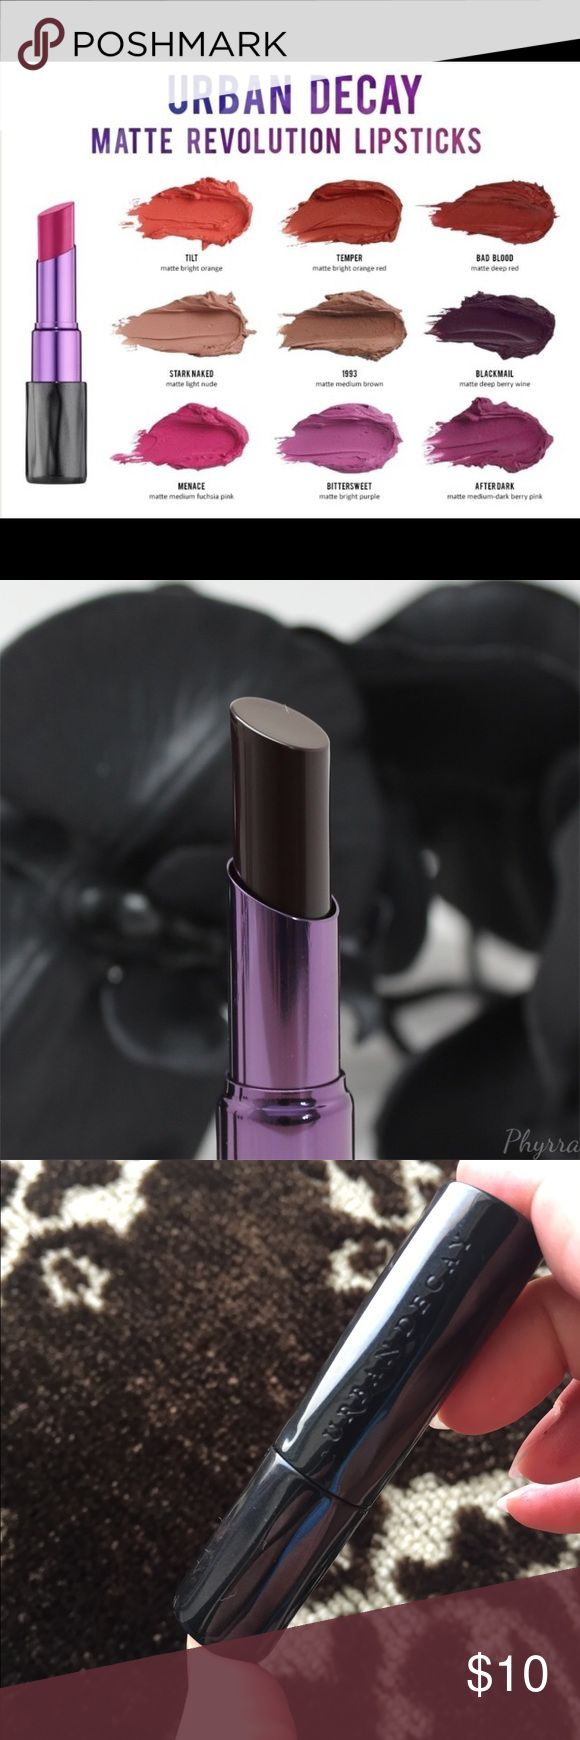 URBAN DECAY blackmail matte revolution lipstick URBAN DECAY blackmail matte revolution lipstick -the first 2 images are not mine -a beautiful dark eggplant shade -only used perhaps 2x!! -I know that can throw people off, a used lipstick, I have cut off the end that I used to a new end untouched by lips!! Urban Decay Makeup Lipstick